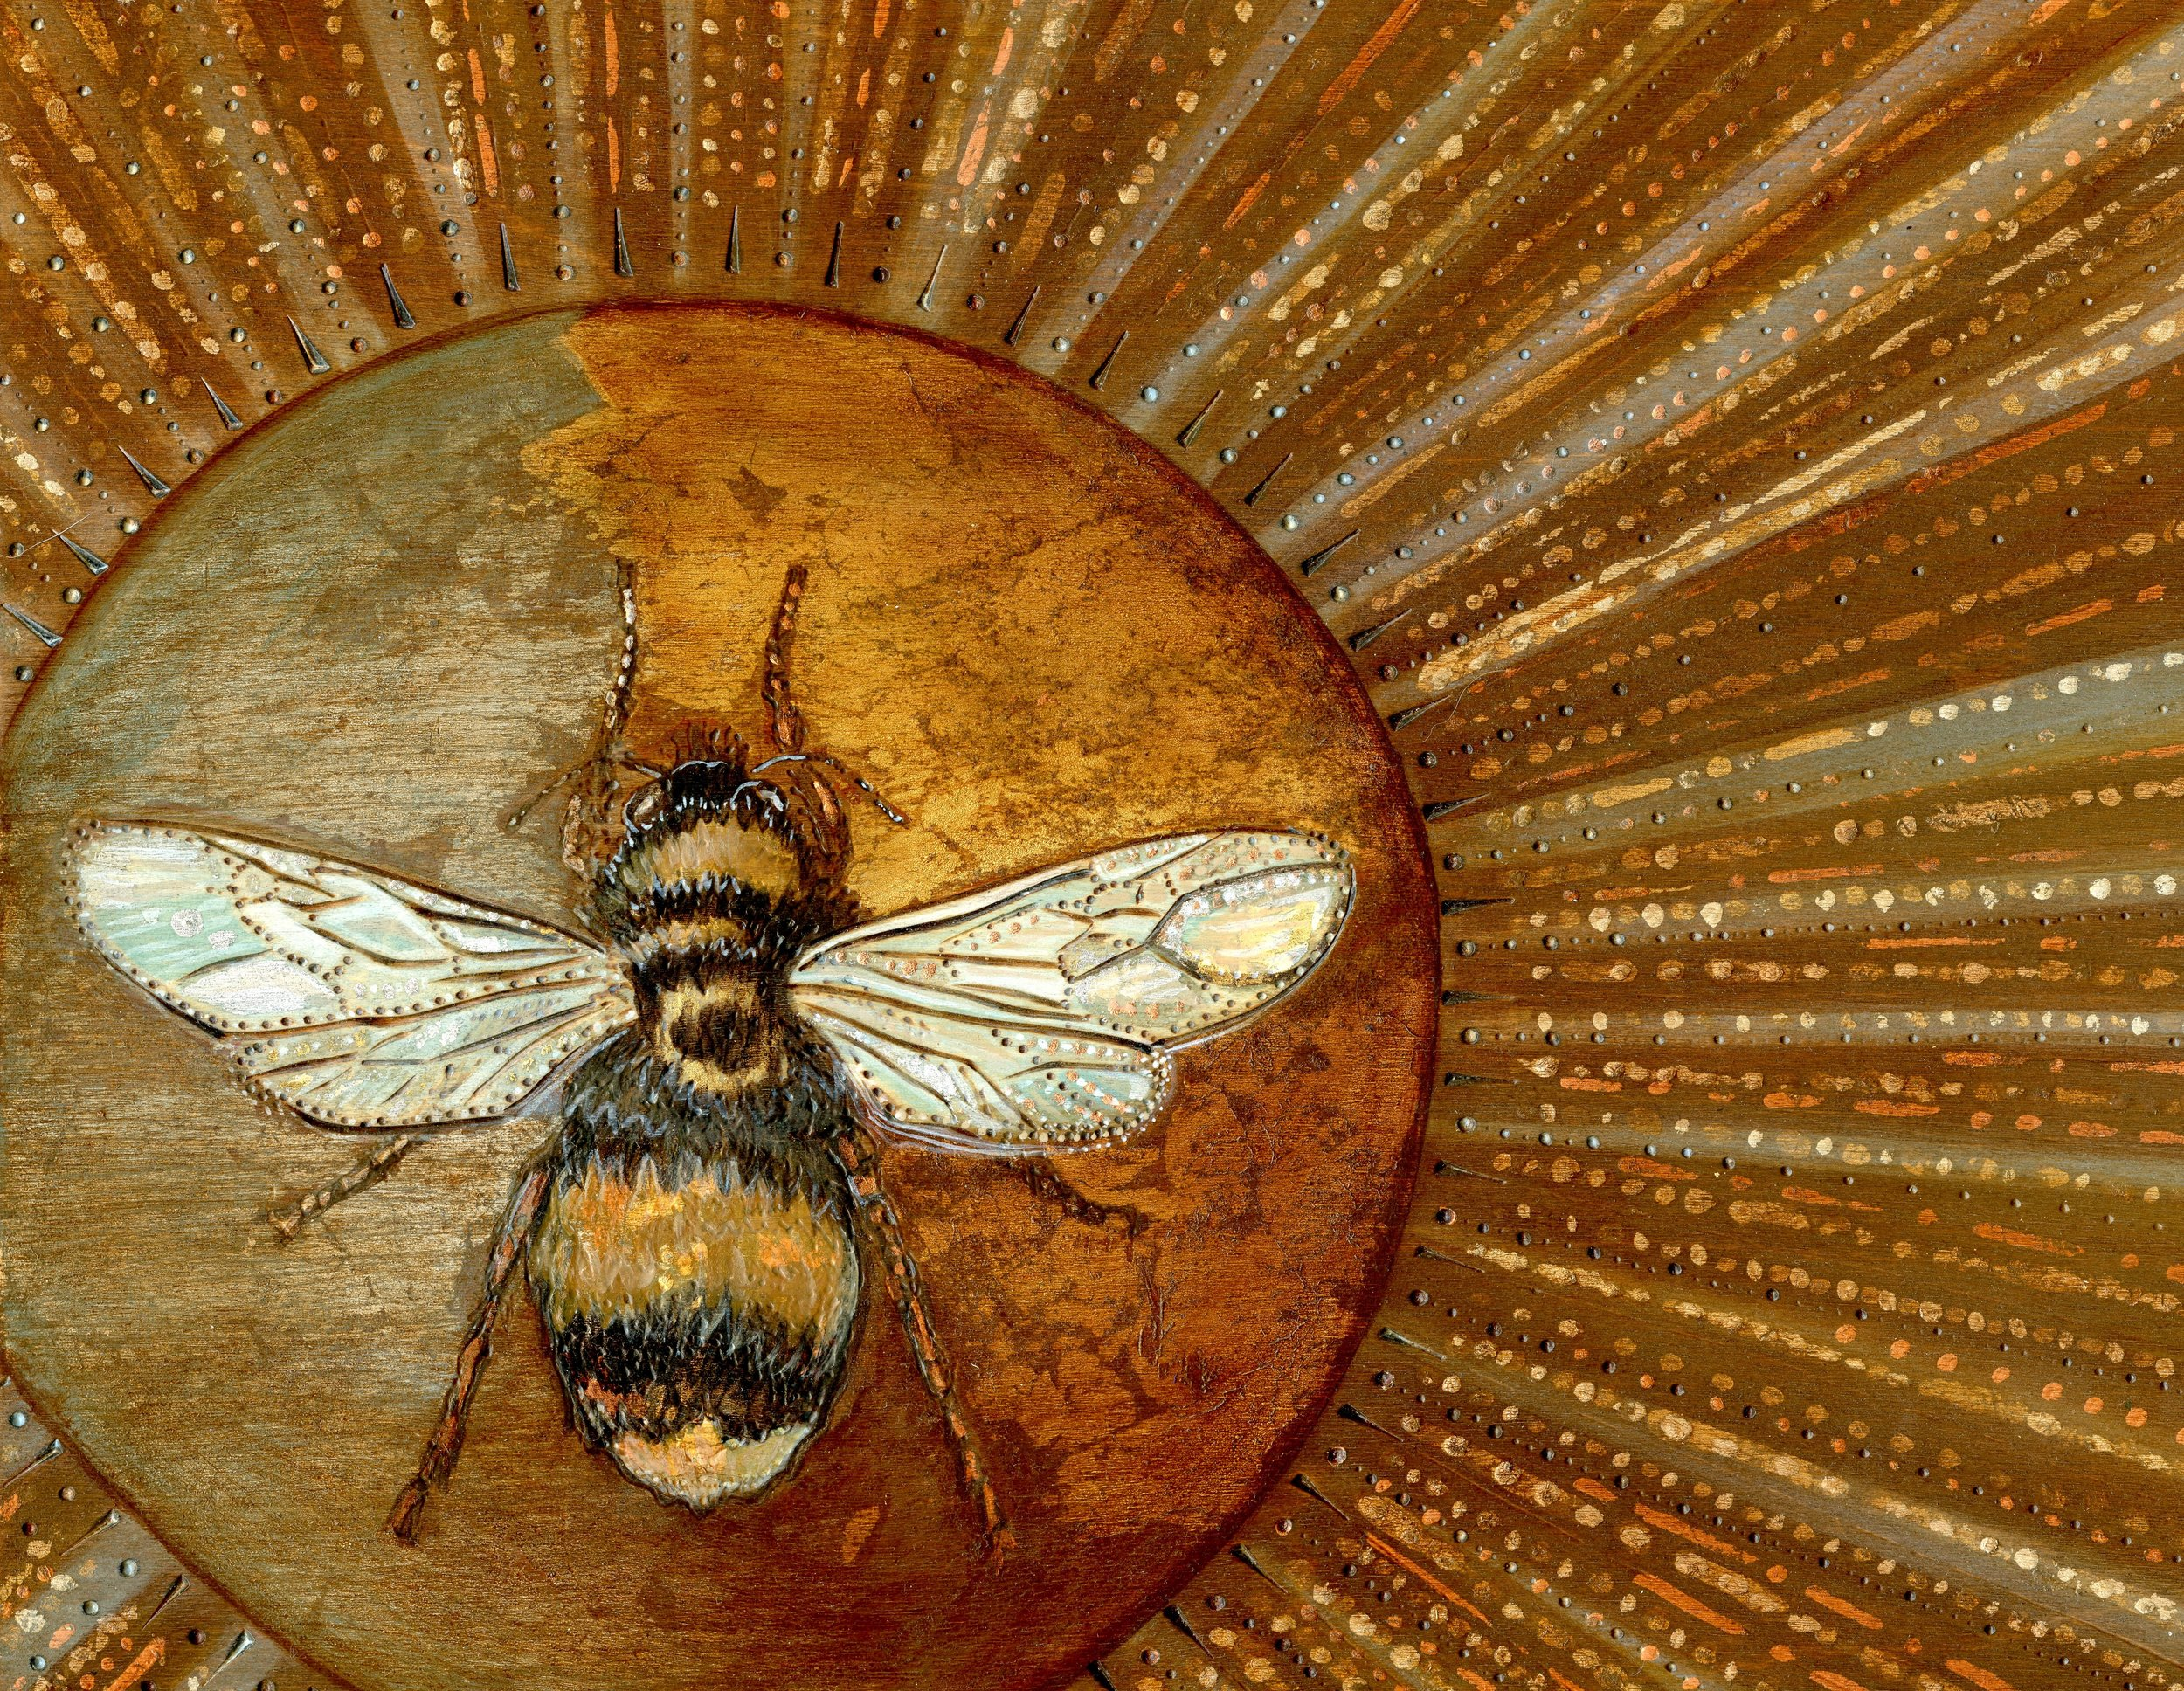 Glorious Bee - Original For Sale & Prints Available in my Etsy Shop